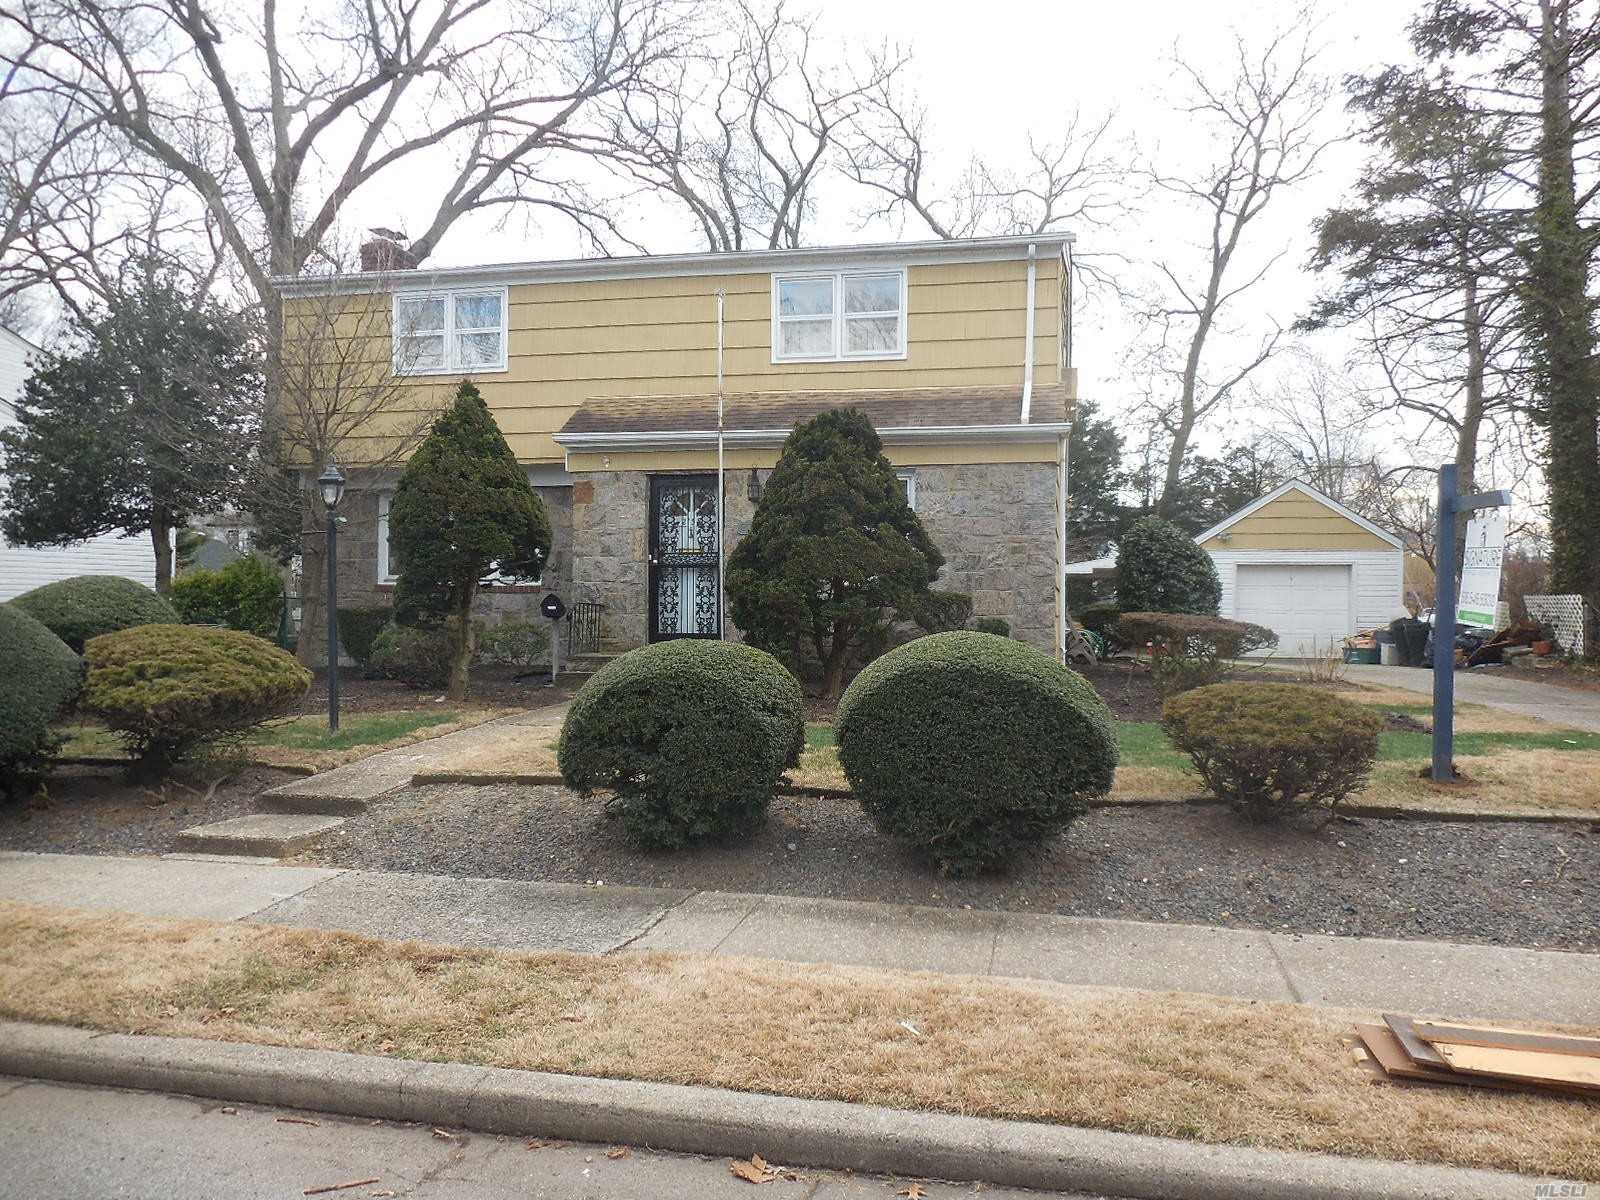 Attention Property Lovers! Expanded Cape In Prime Merrick Manor On Huge 75X125 Lot! Features Lr With Fieldstone Fireplace, Hardwood Floors, Basement W Outside Entry, All Large Room And More! A Little Tlc Will Make This A Showplace!